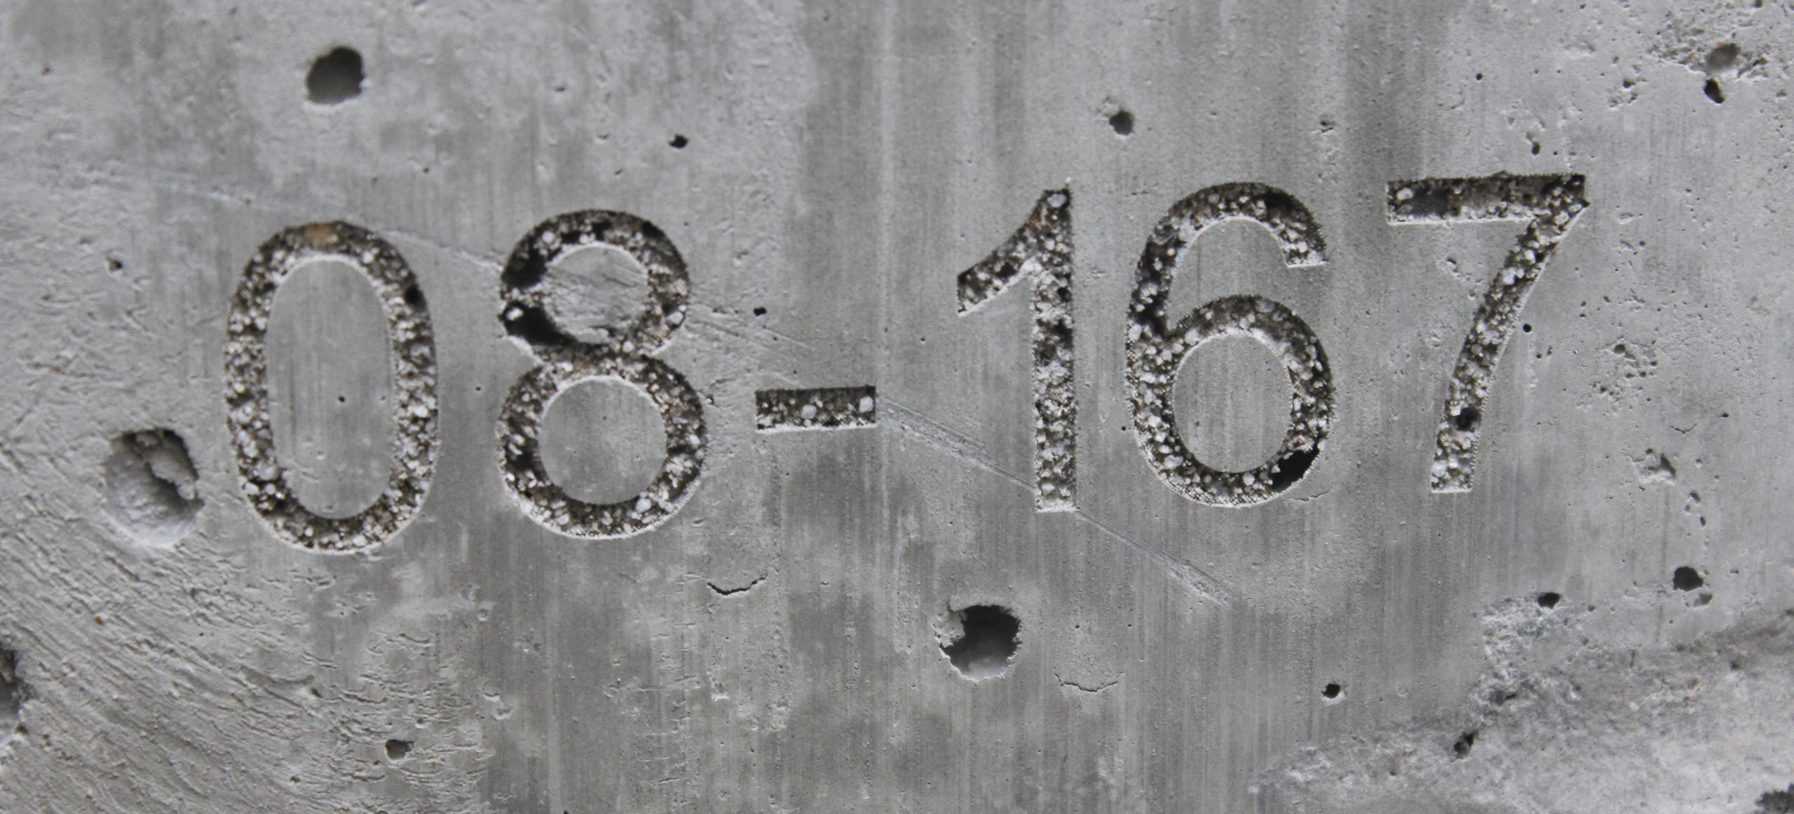 Laser marking on concrete